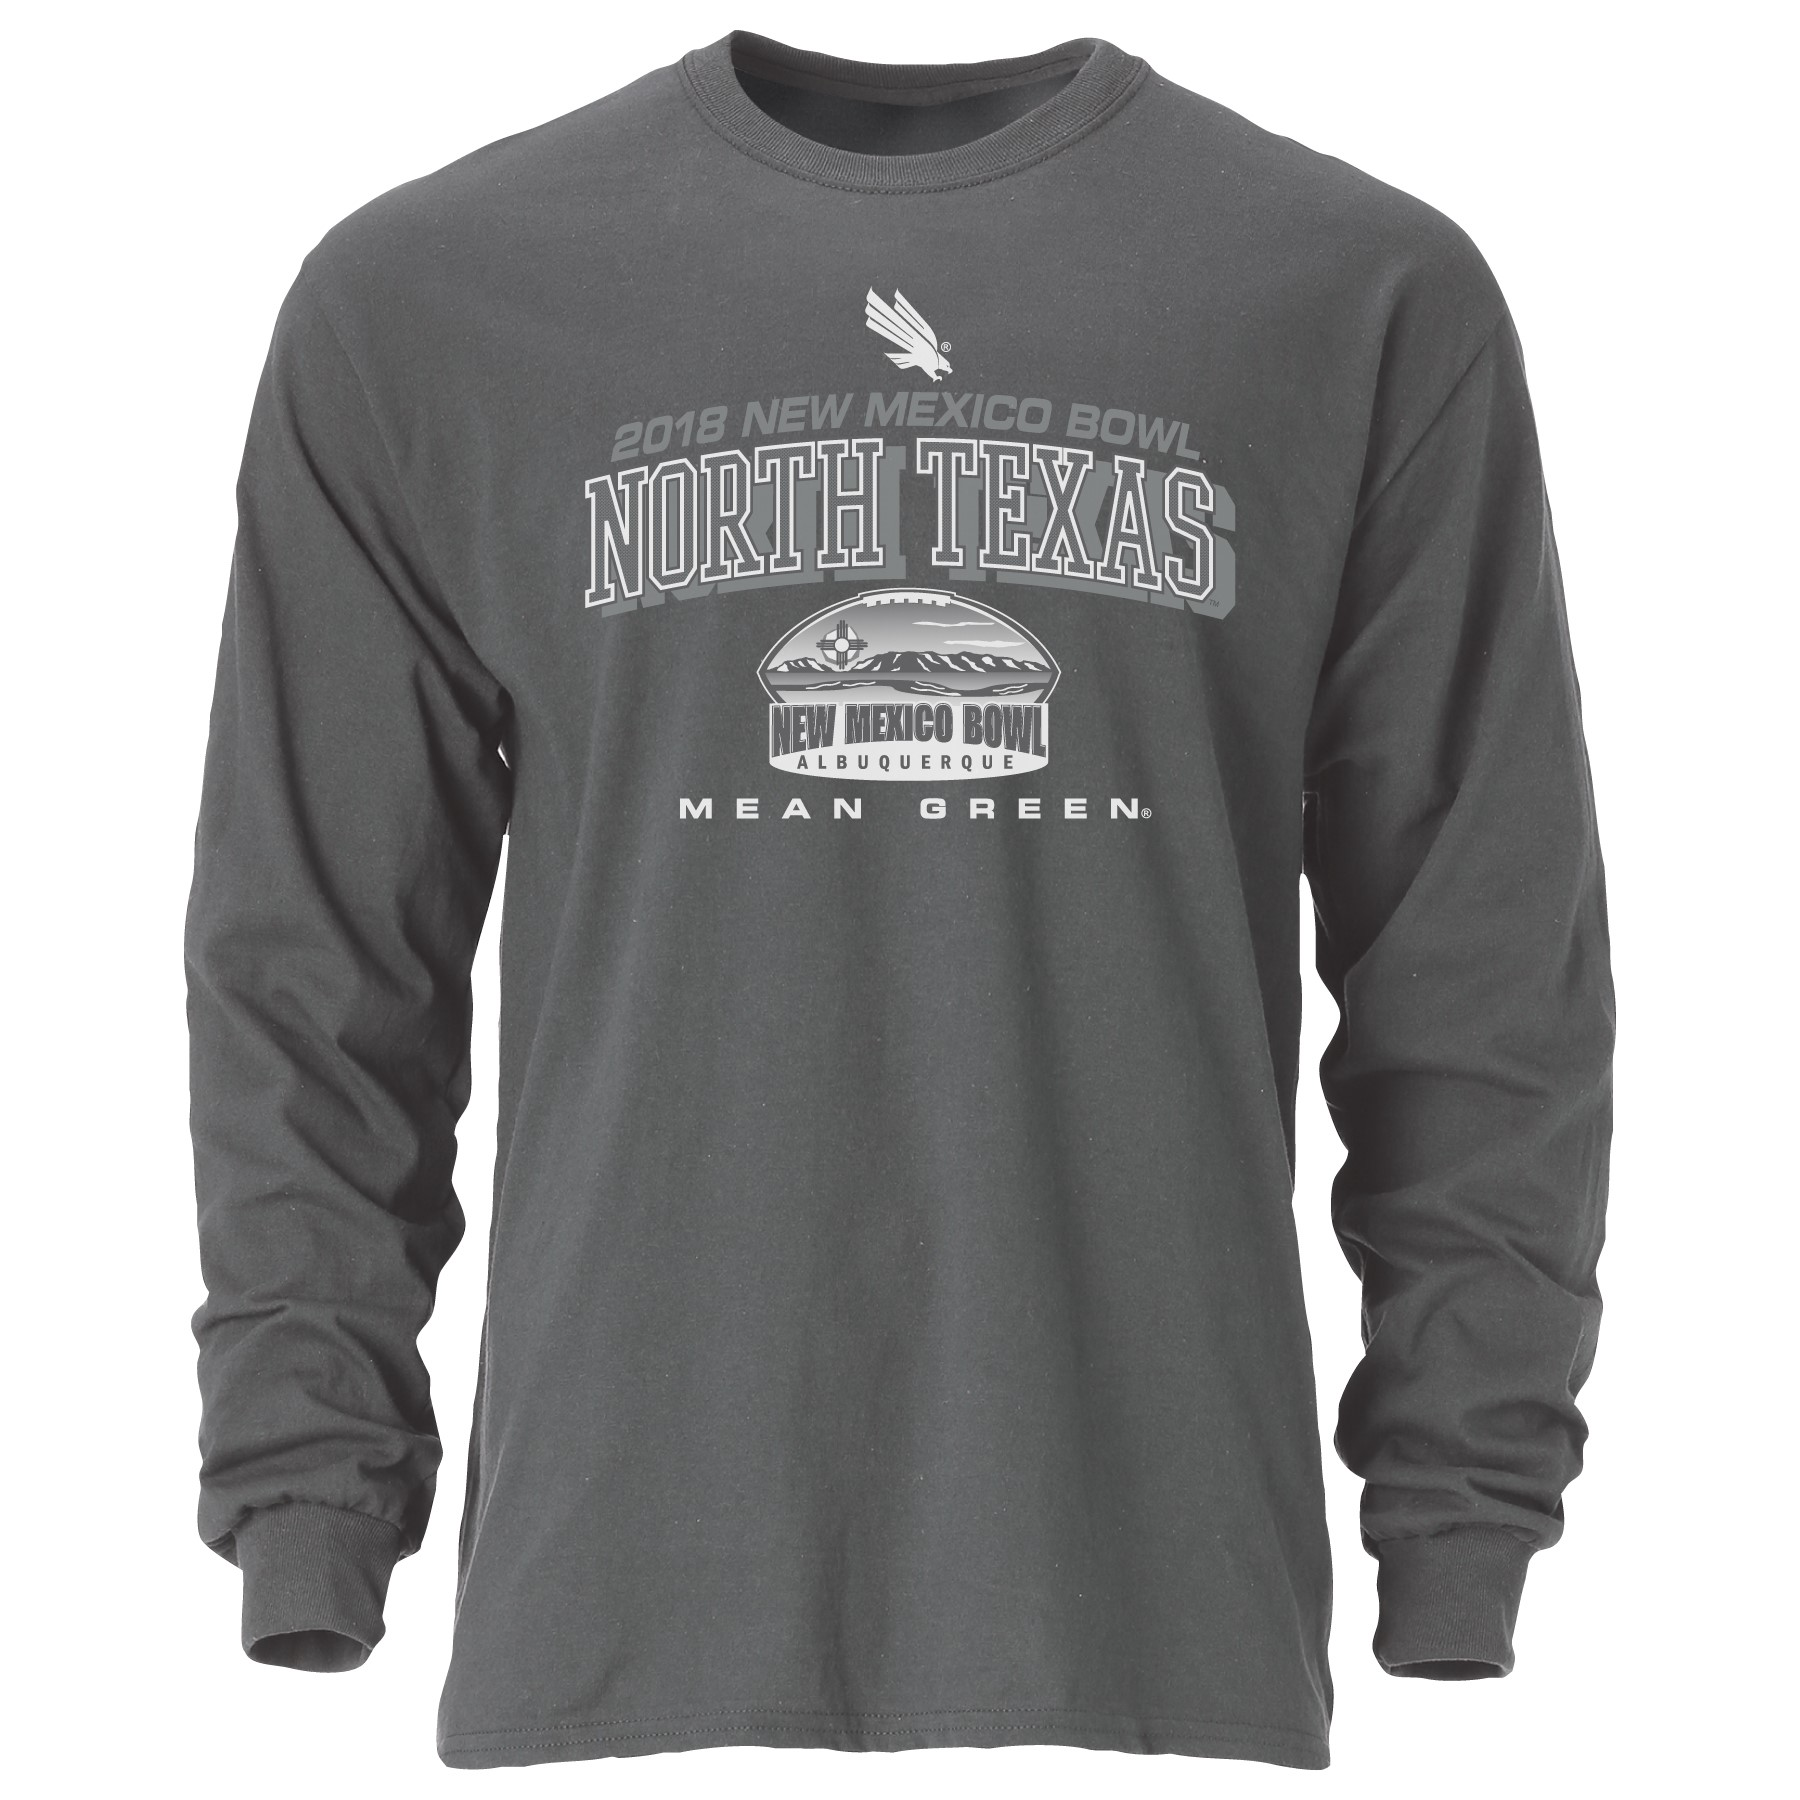 NEW MEXICO BOWL LONG SLEEVE